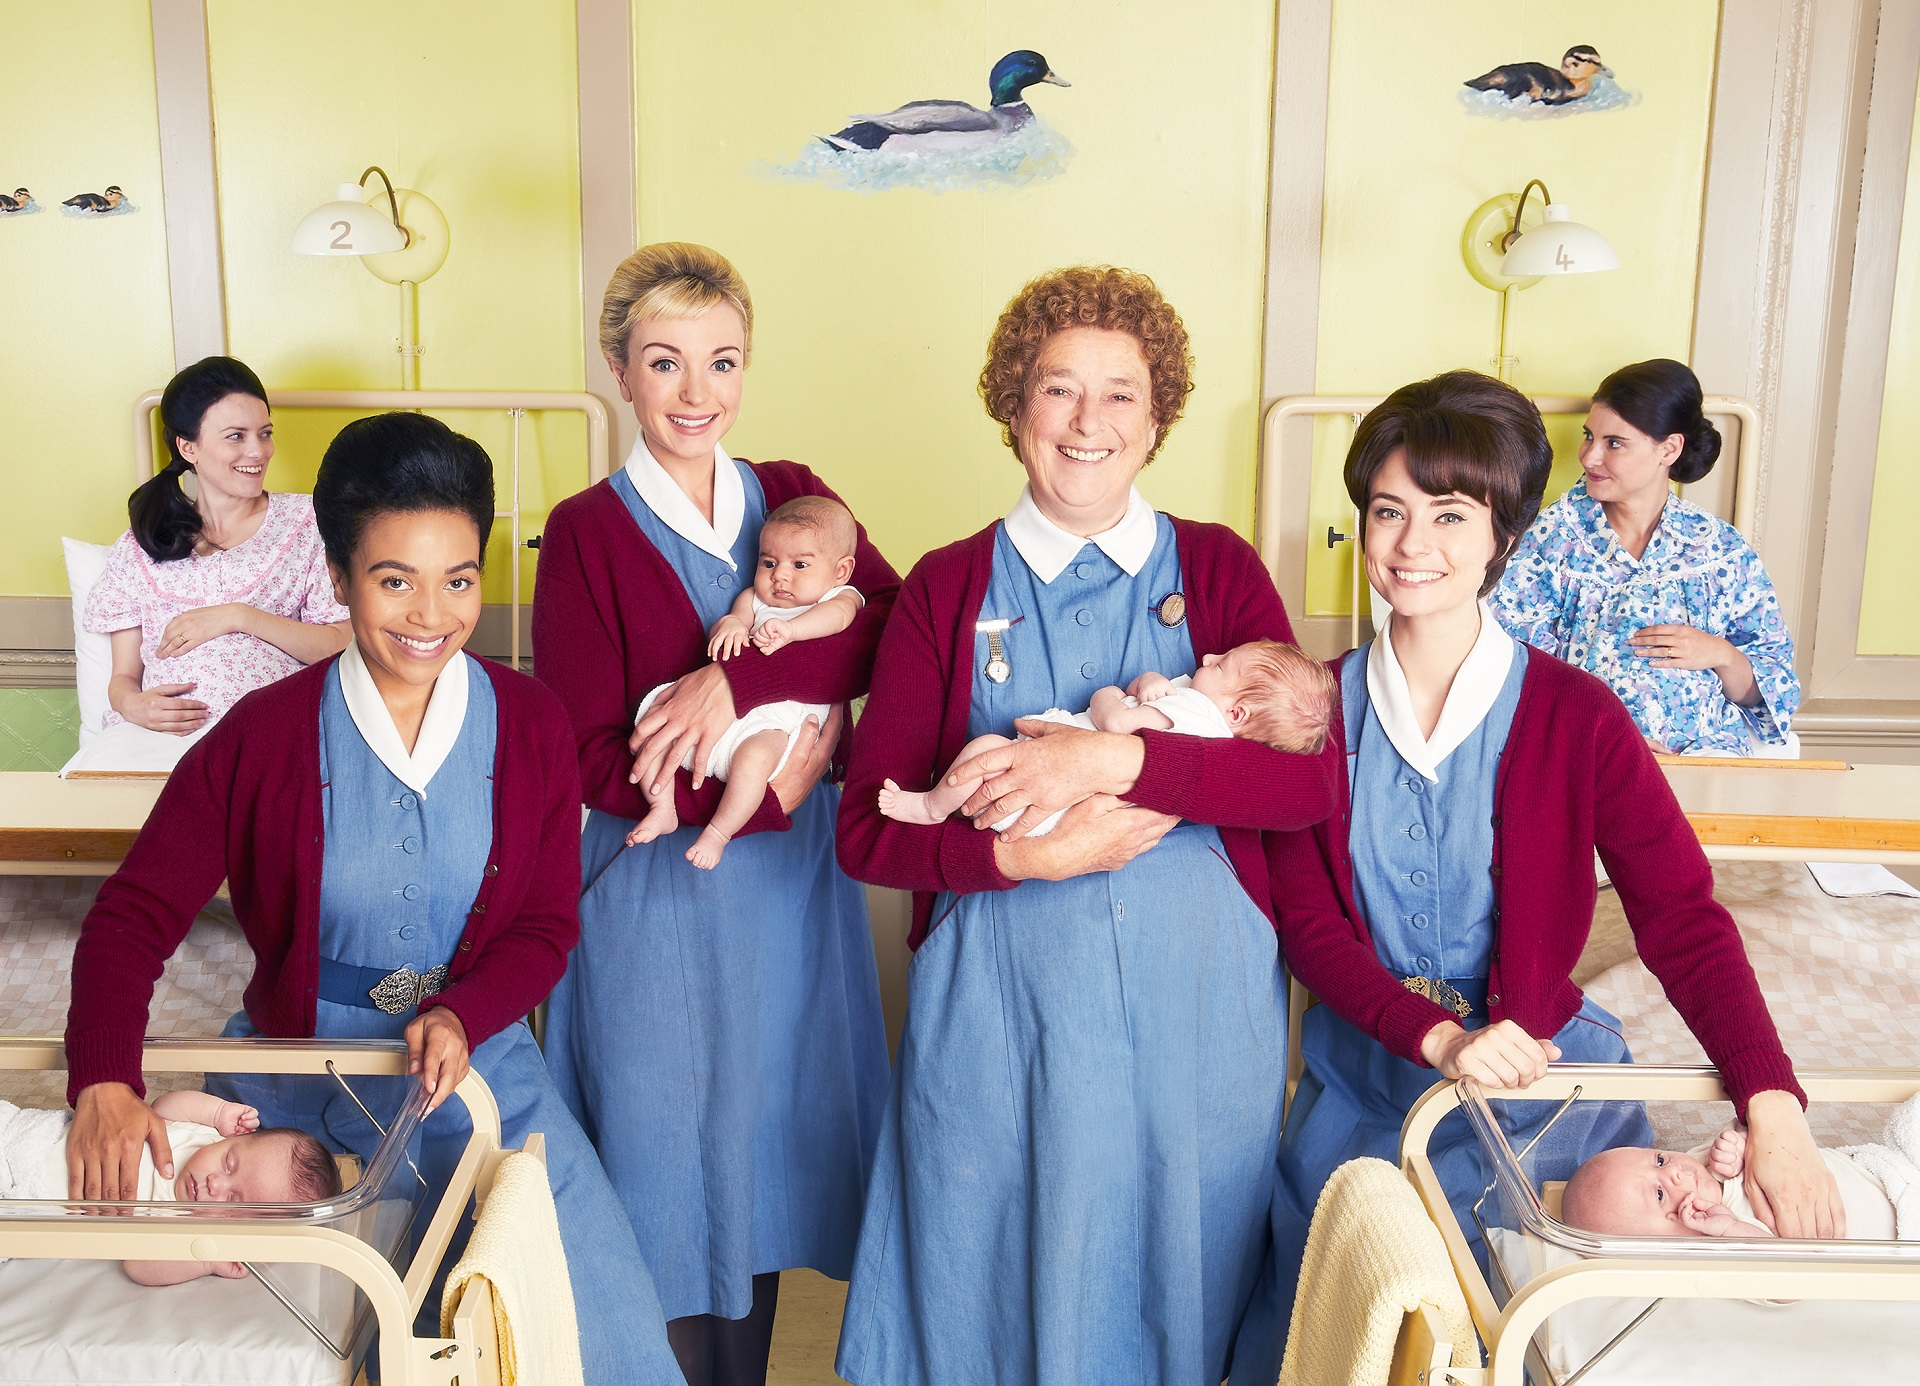 Kcts Call The Midwife Christmas Special 2020 Stream What to watch during Women's History Month on KCTS 9 | KCTS 9